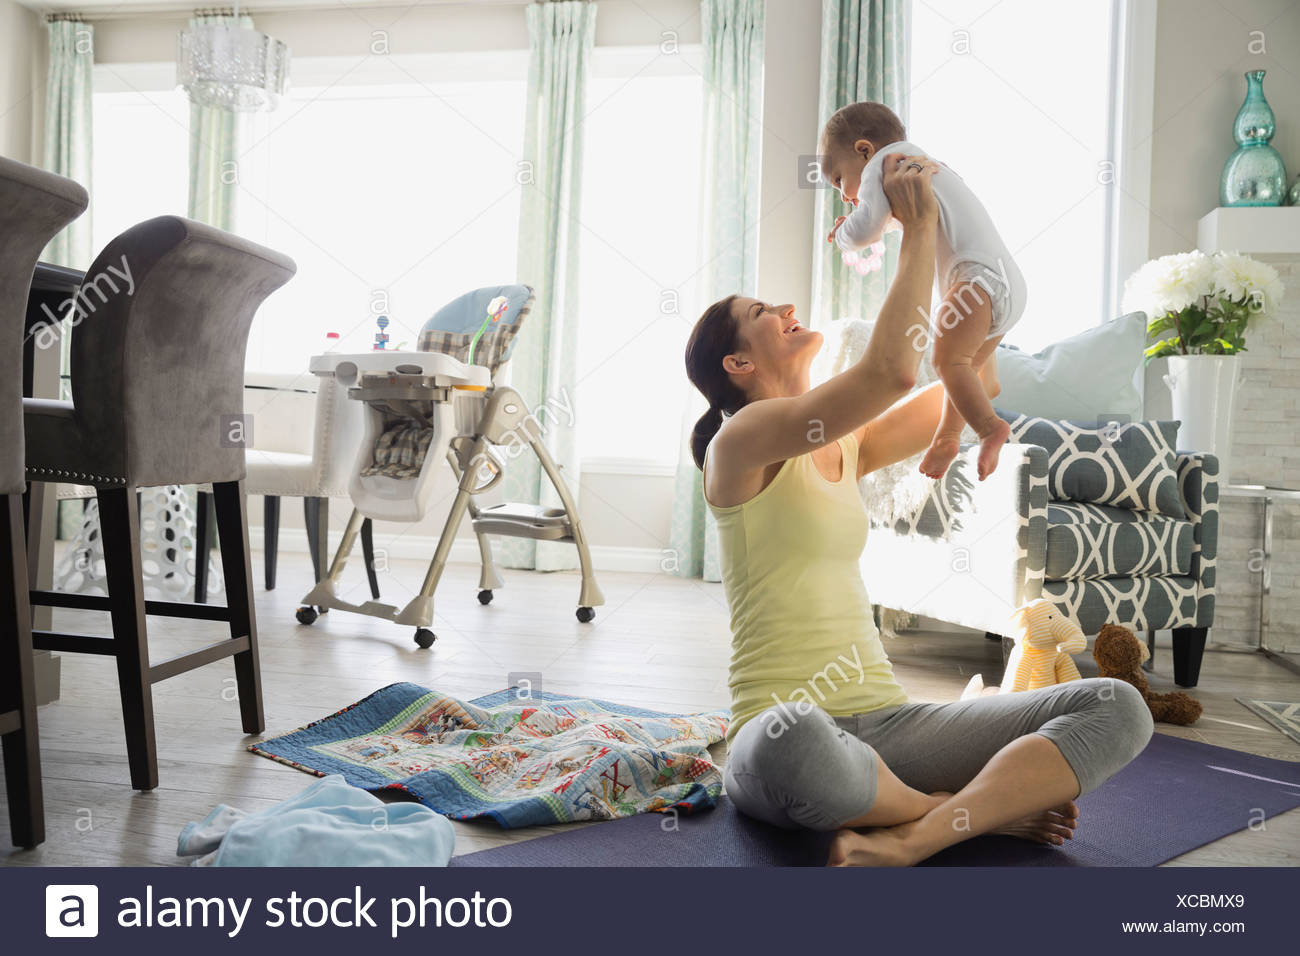 Fit mother lifting baby on exercise mat at home - Stock Image